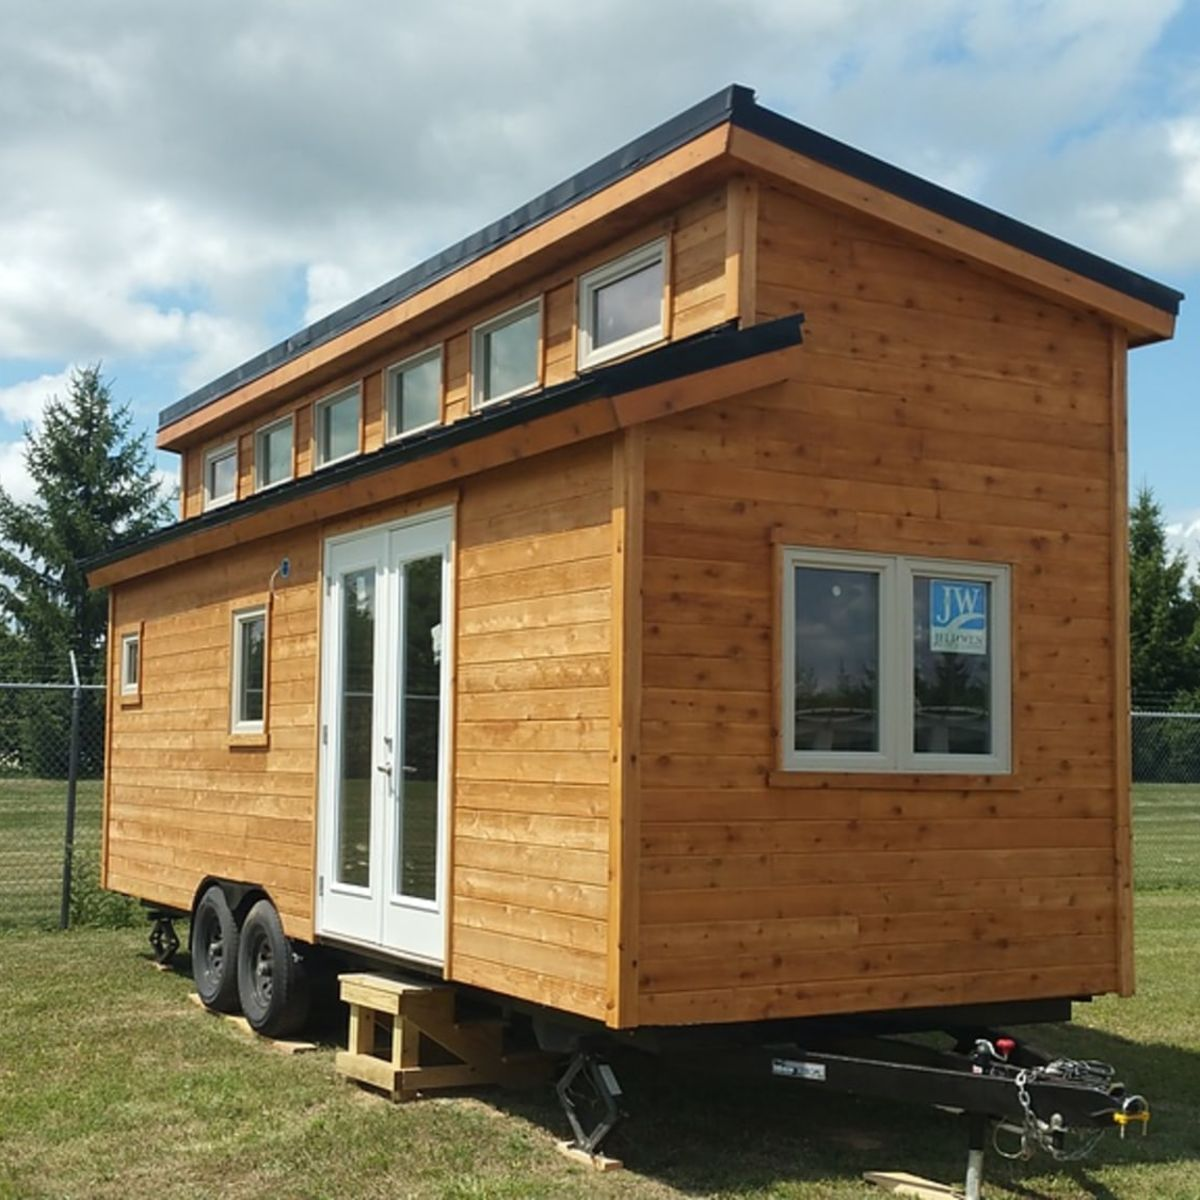 Cider Box Tiny House For Sale Tiny House For Sale In